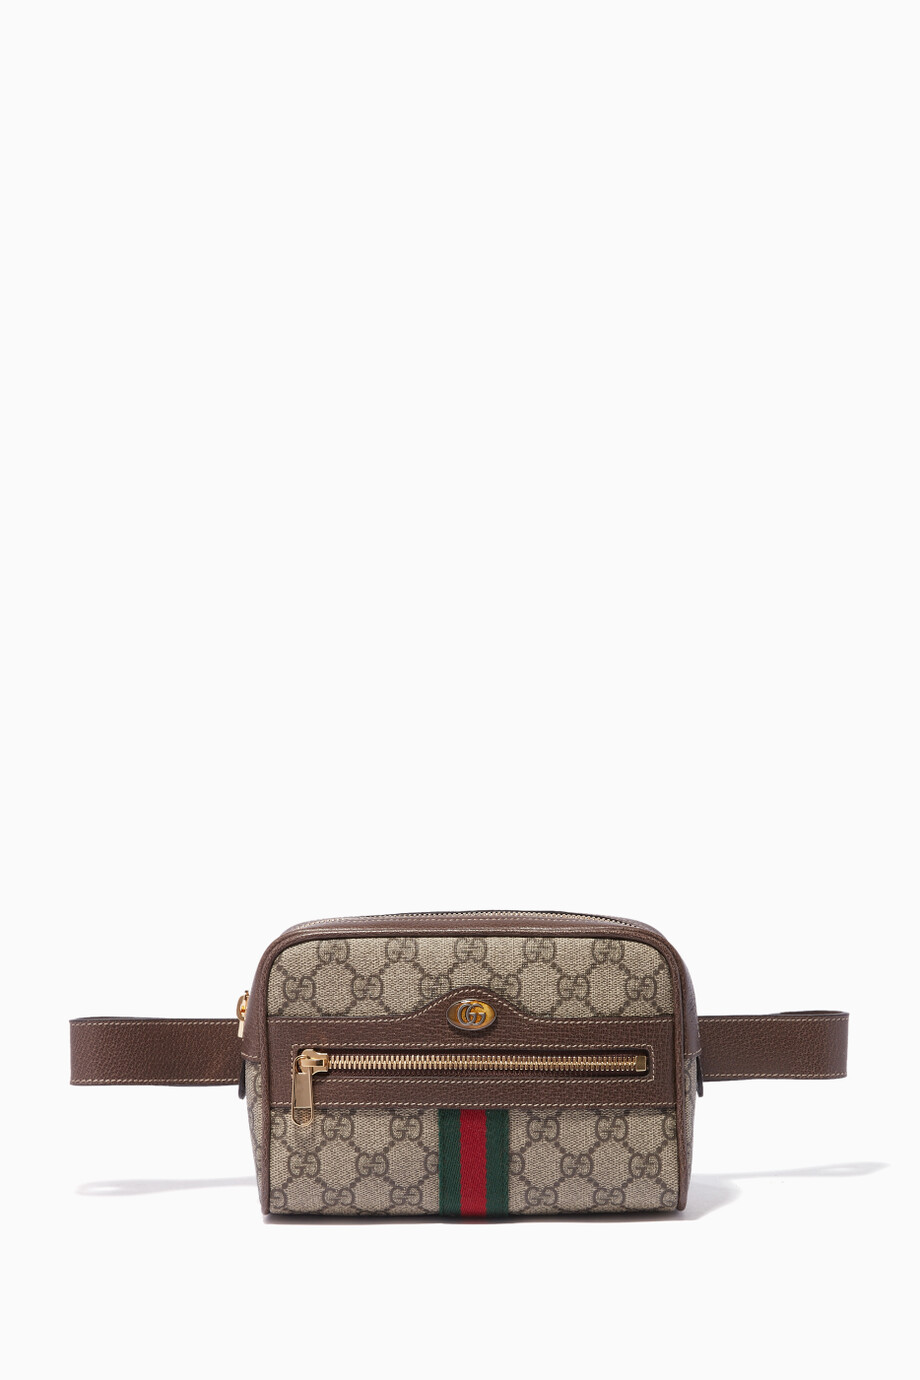 95a8ea0ab161 Shop Gucci Neutral Beige Ophidia GG Supreme Mini Belt Bag for Women ...